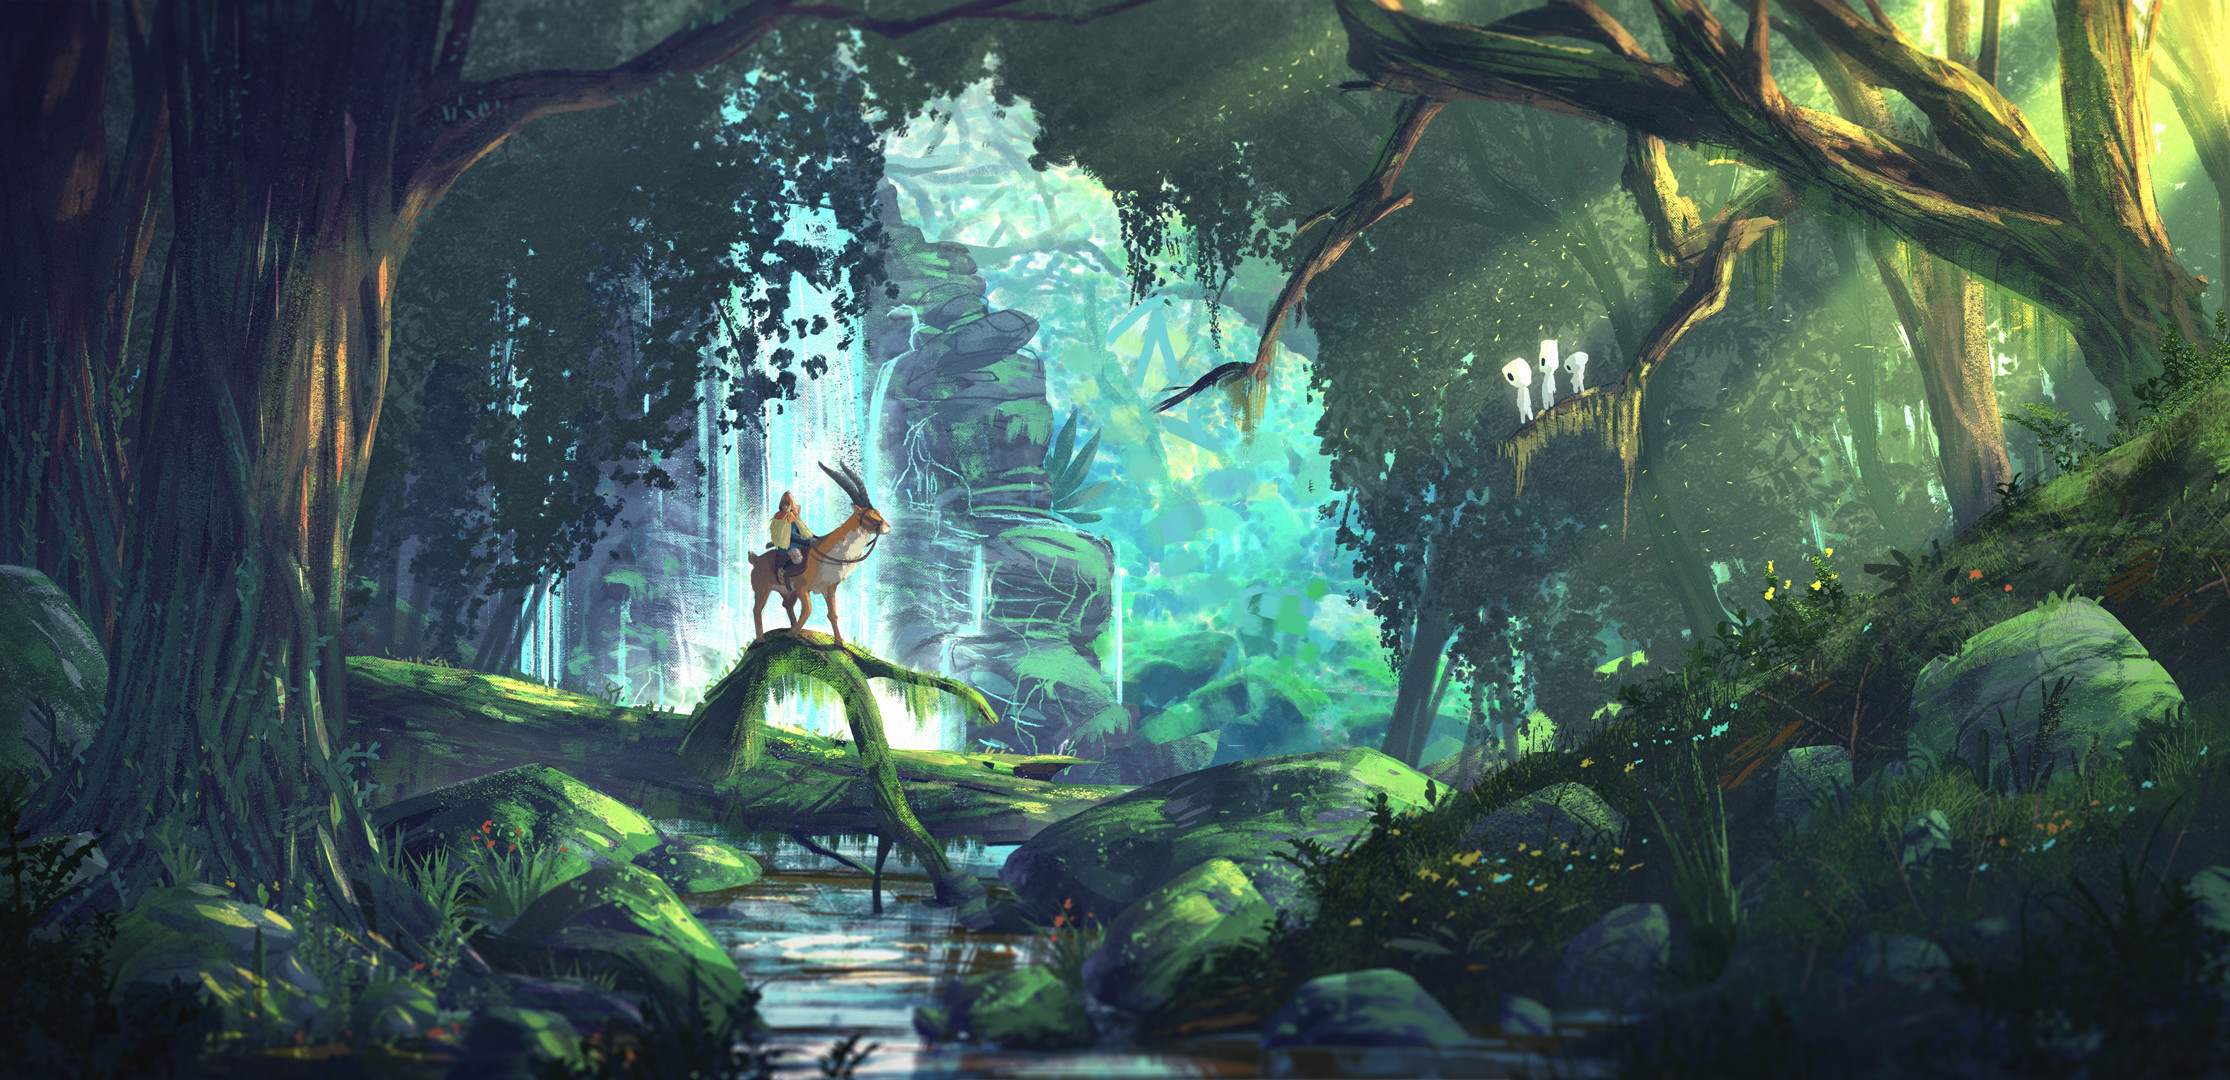 2230x1080 Princess Mononoke painted Forest Wallpaper (high res)